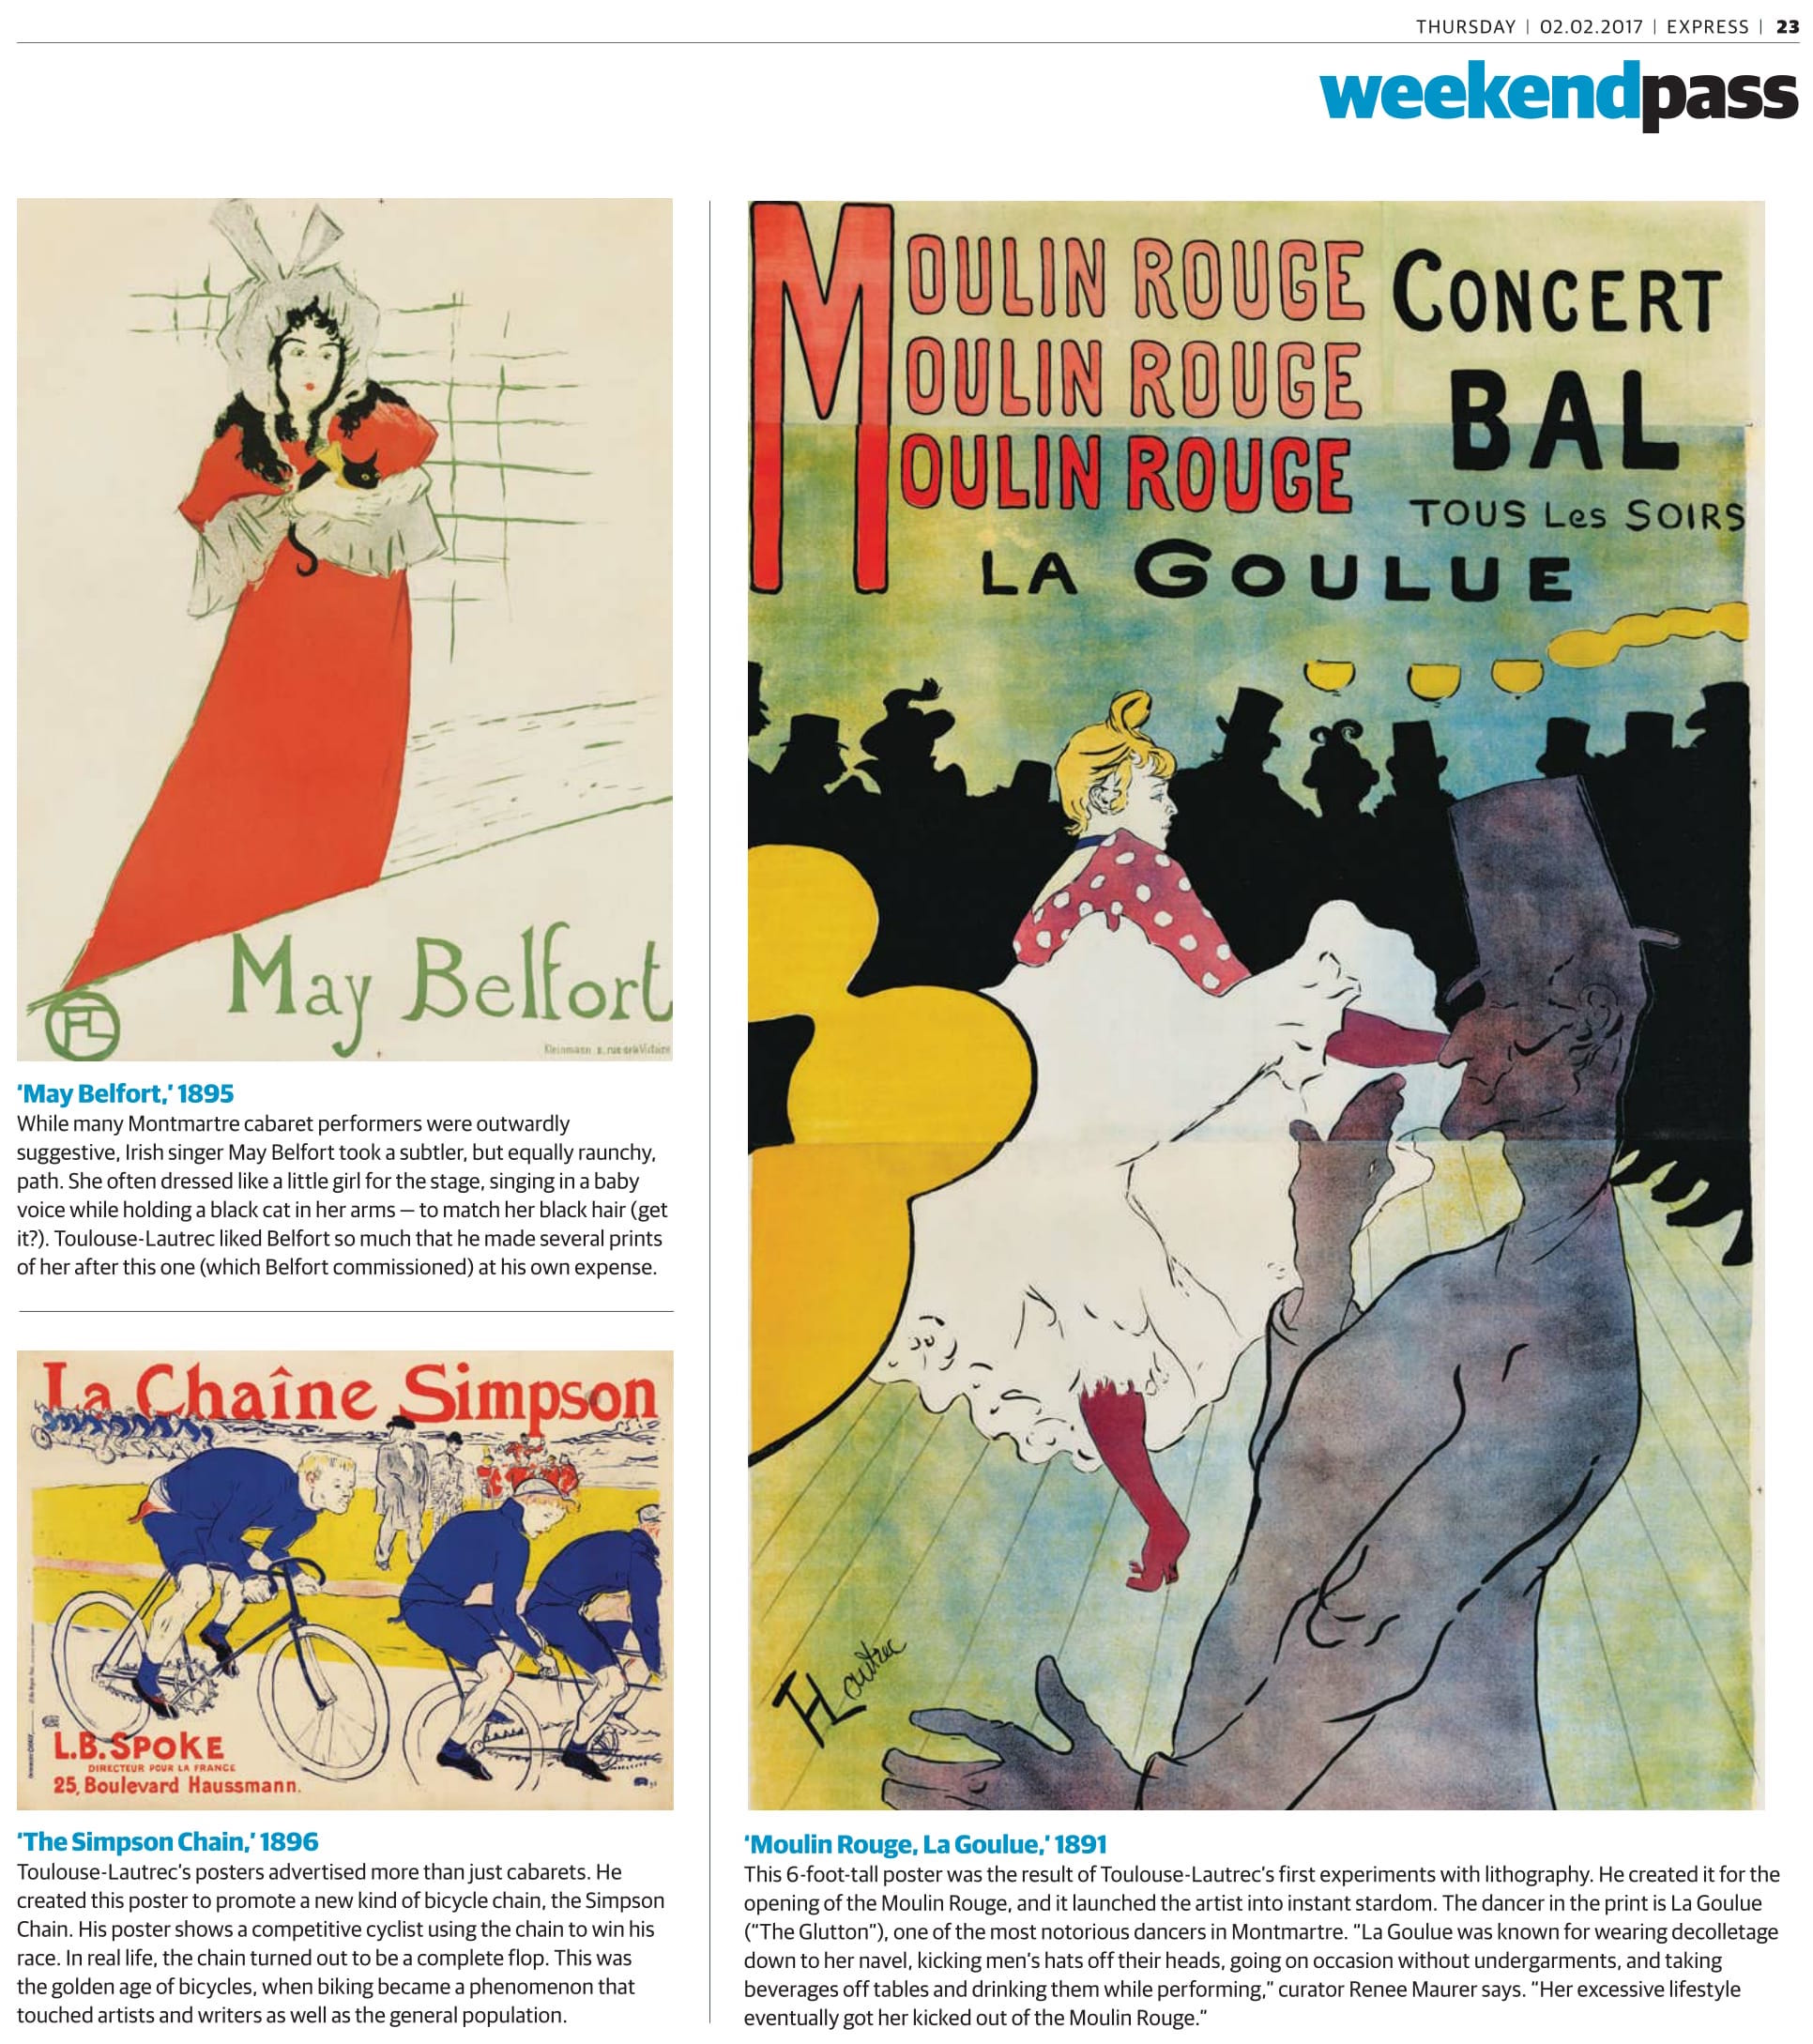 https://www.washingtonpost.com/express/wp/2017/02/02/toulouse-lautrecs-posters-will-whisk-you-back-to-the-boho-nightclubs-of-late-1800s-paris-and-might-make-you-blush